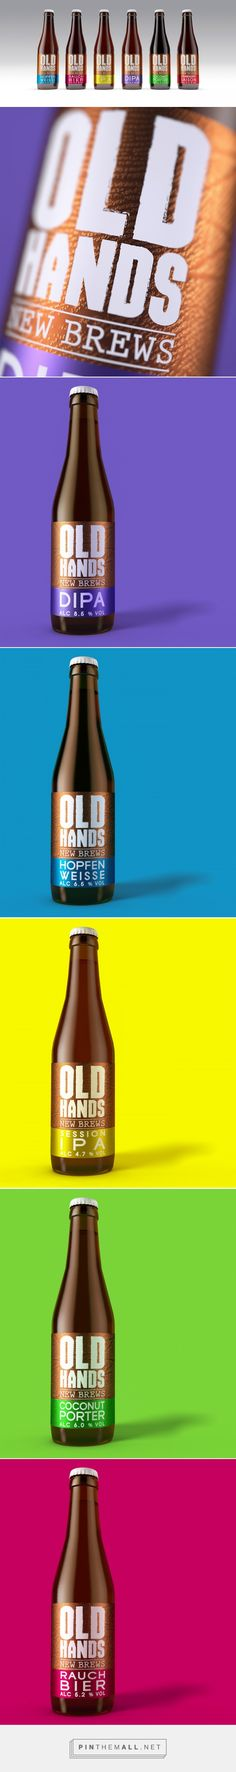 Old Hands Fine Ales - Packaging of the World - Creative Package Design Gallery - http://www.packagingoftheworld.com/2017/02/old-hands.html